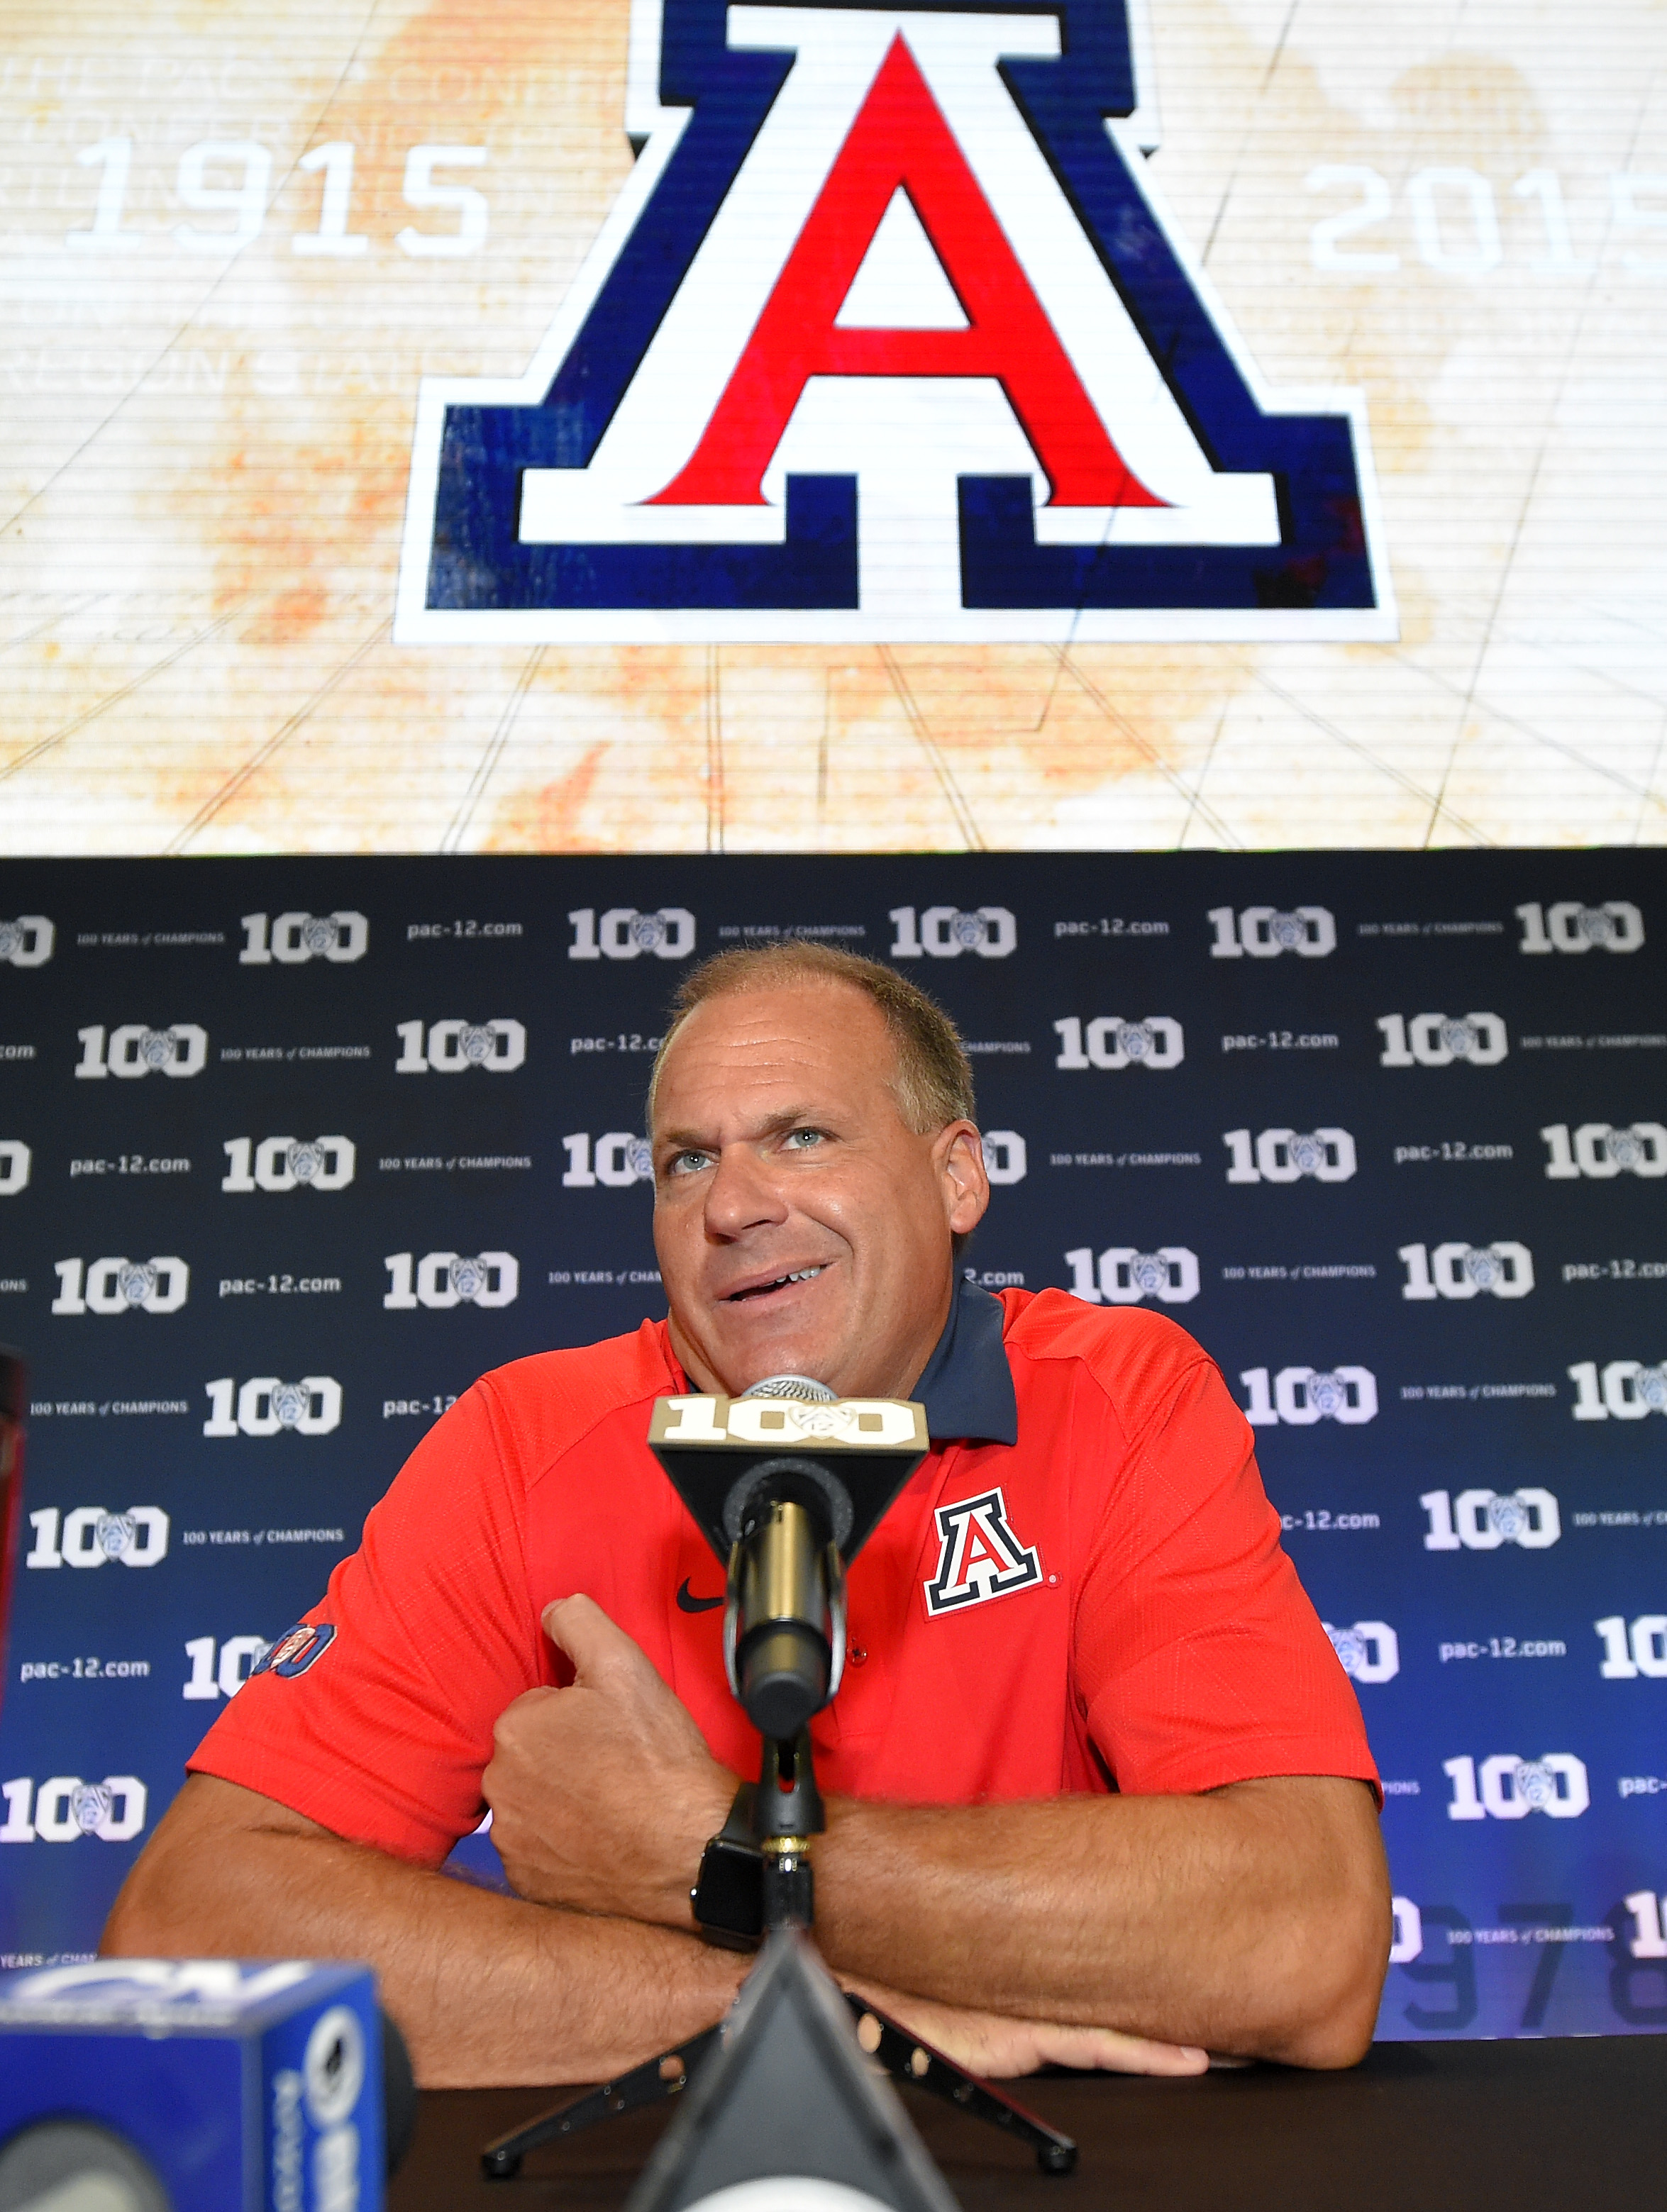 Arizona head coach Rich Rodriguez speaks to reporters during NCAA college Pac-12 Football Media Days, Friday, July 31, 2015, in Burbank, Calif. (AP Photo/Mark J. Terrill)